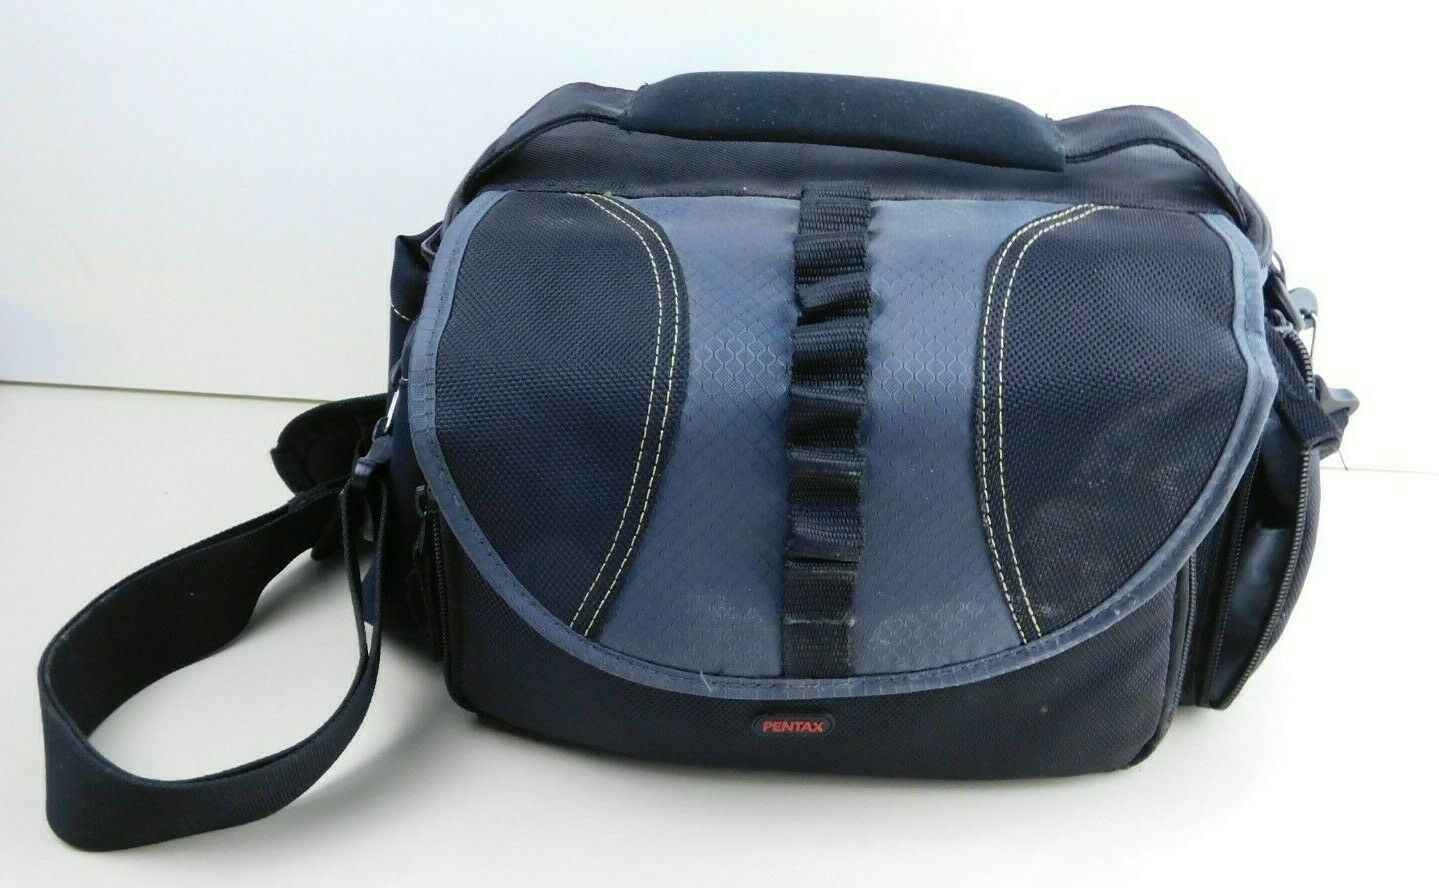 Primary image for  Pentax Camera Bag SLR DSLR K-50 + Others  Black/Gray